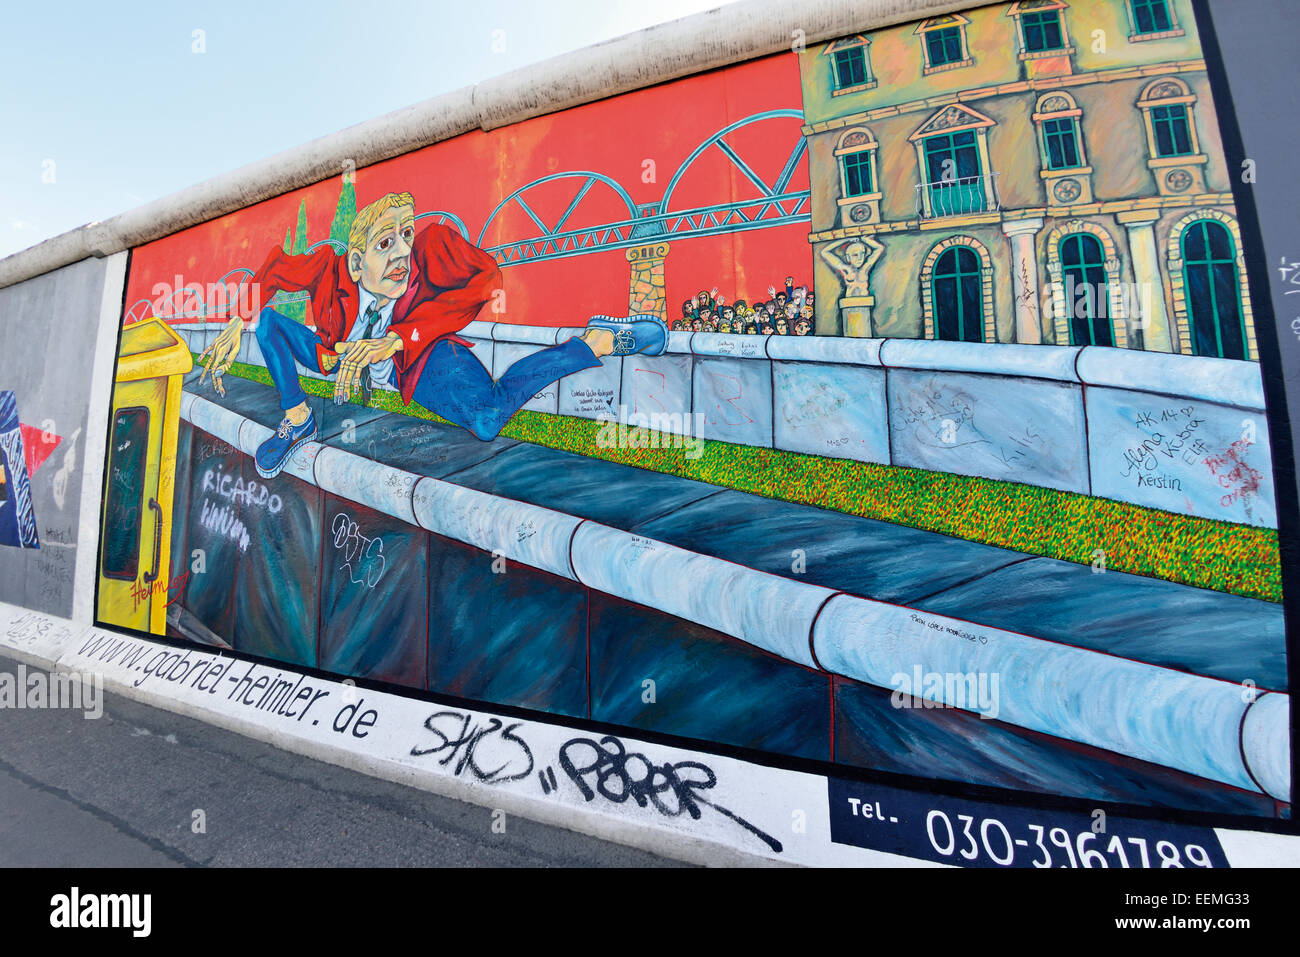 Germany, Berlin: Wall painting of a man jumping the wall to escape east Germany at East Side Gallery - Stock Image